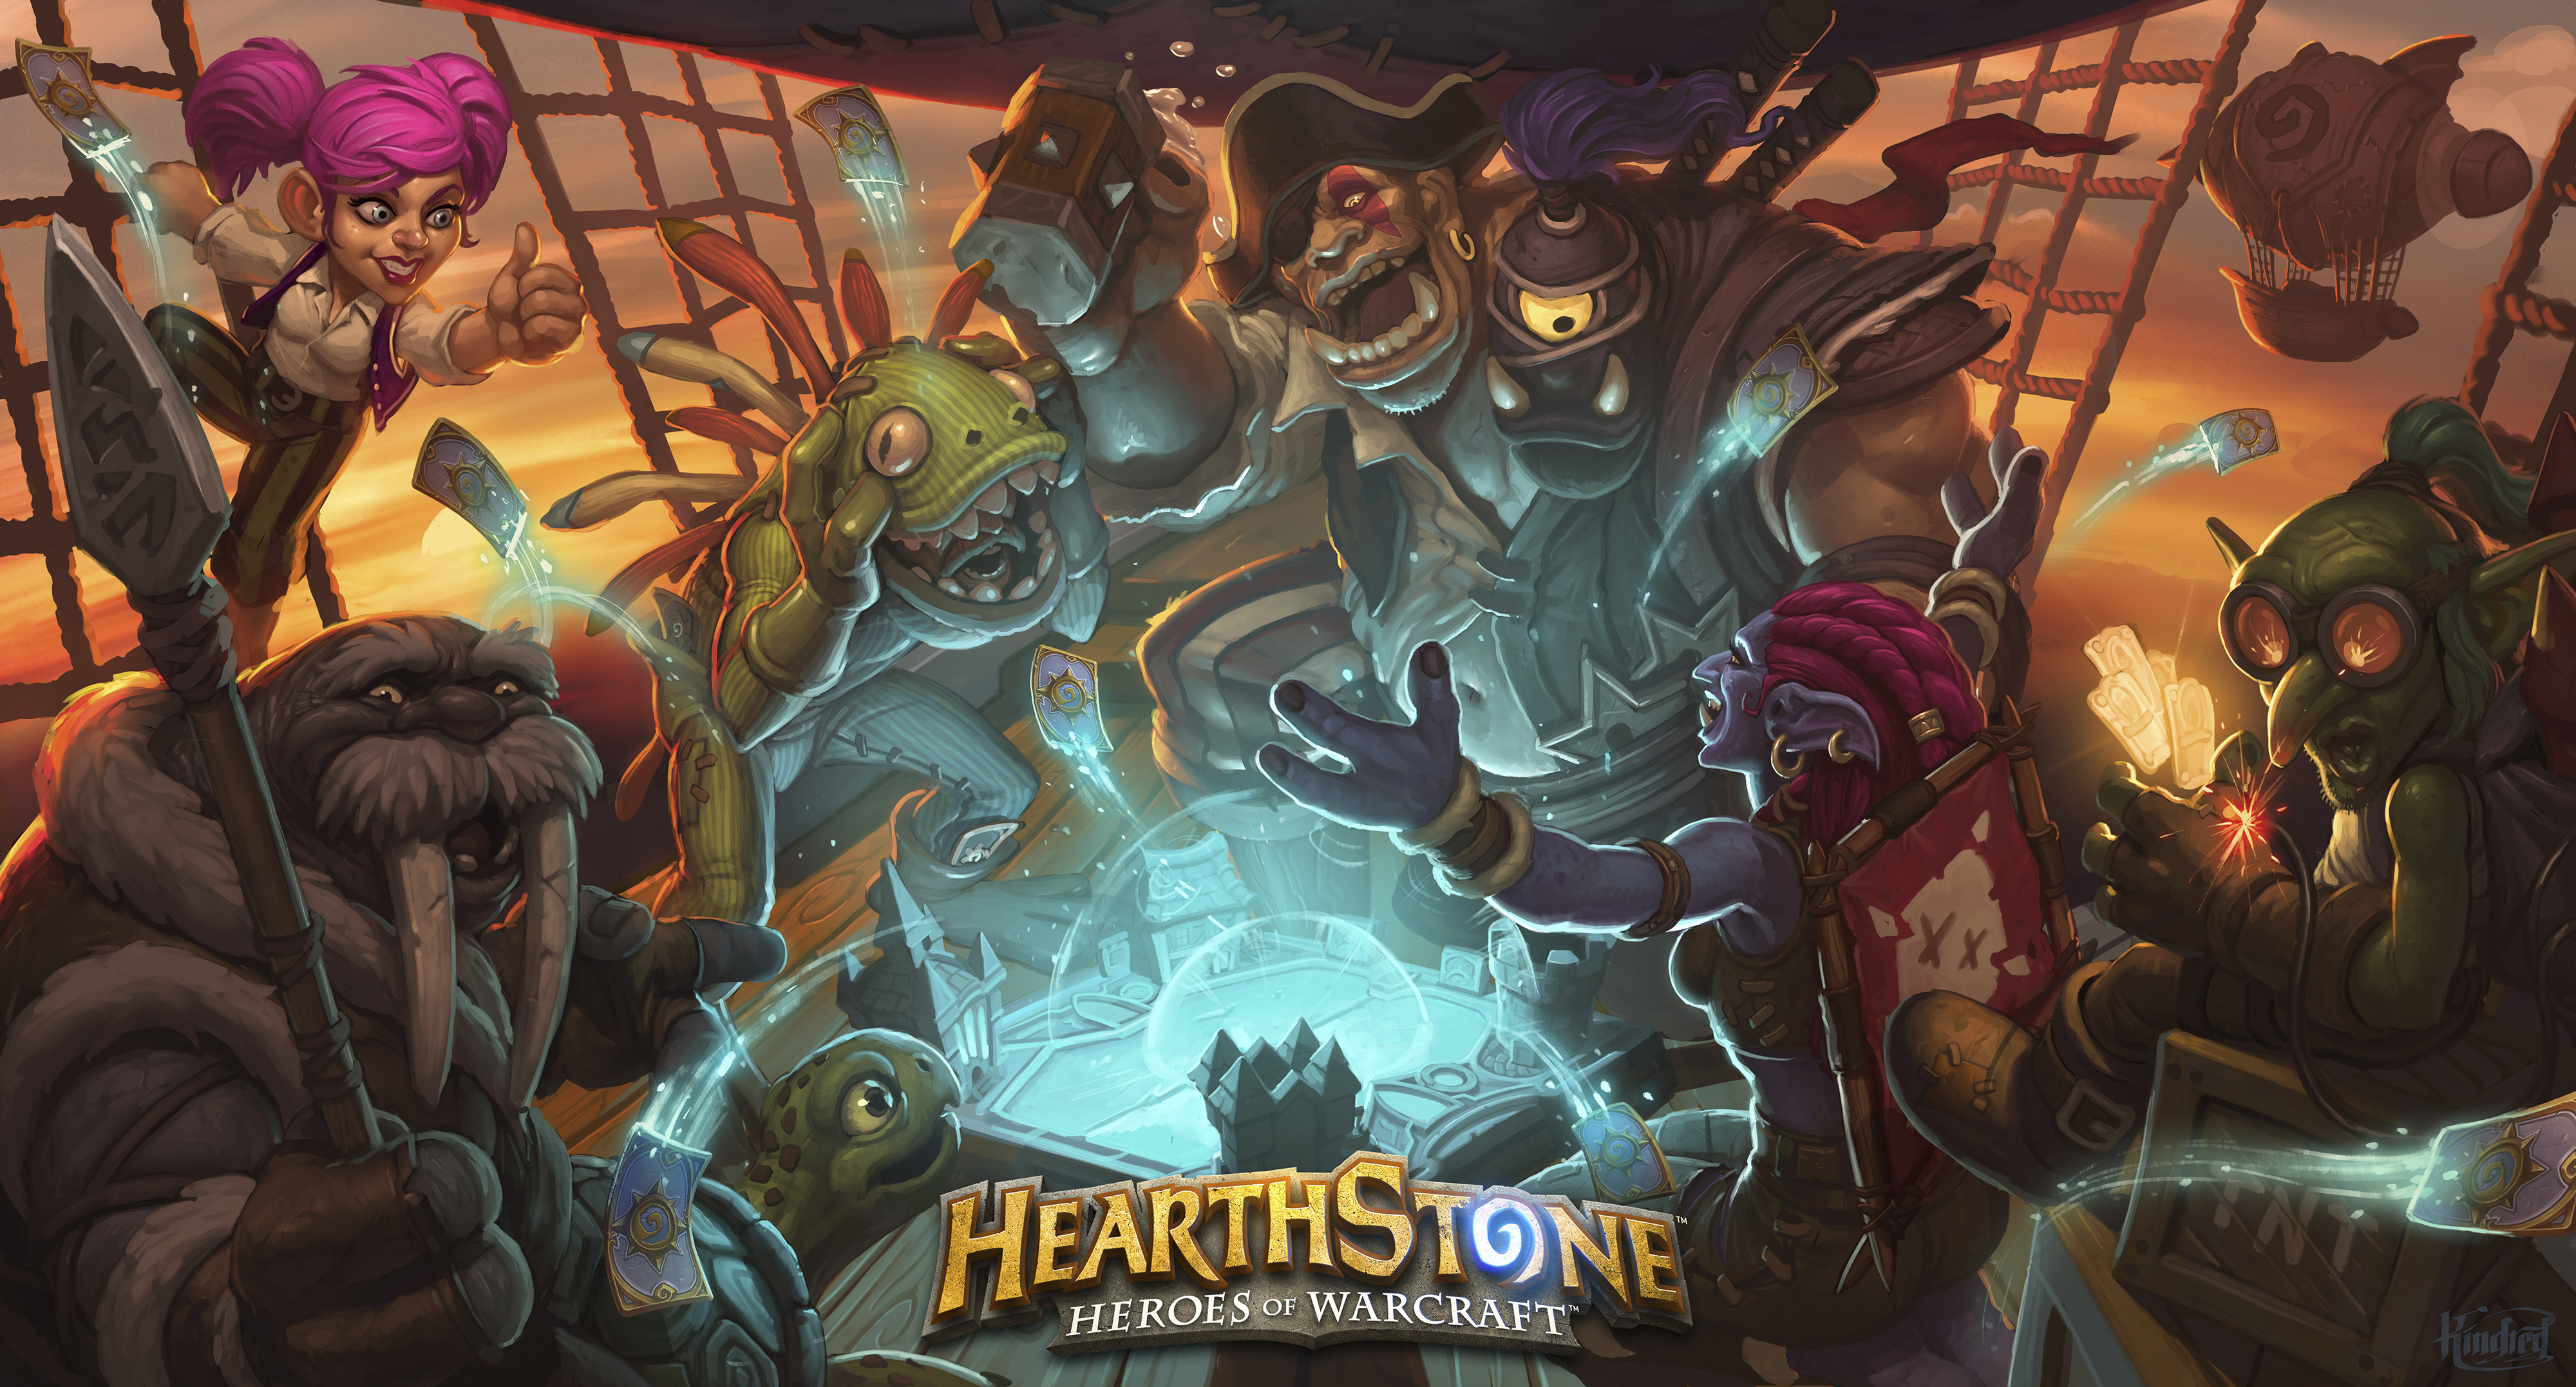 Hearthstone World of Warcraft Blizzard